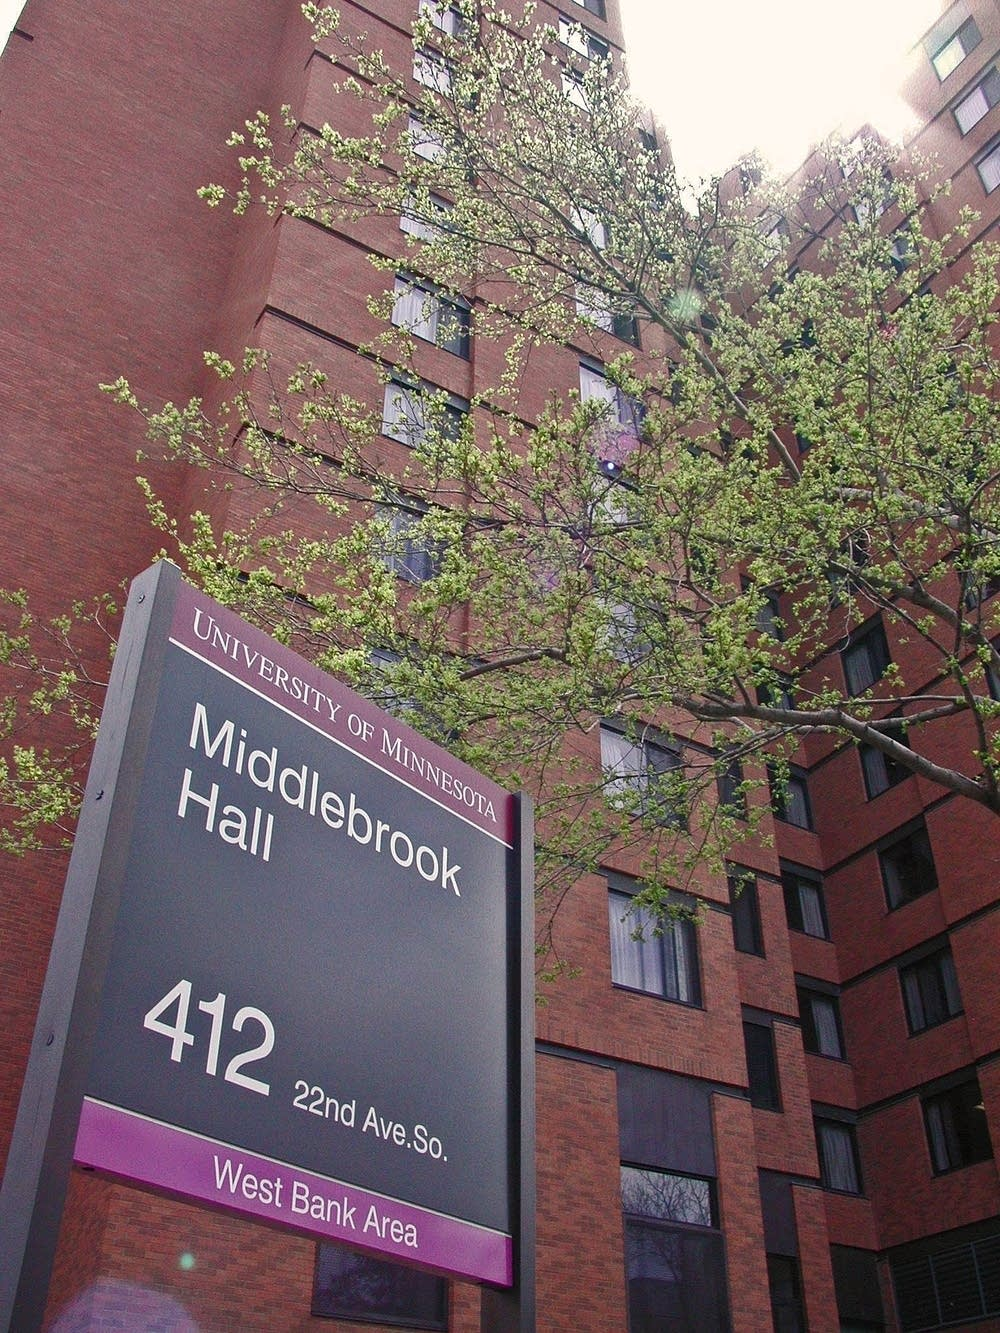 Middlebrook Hall